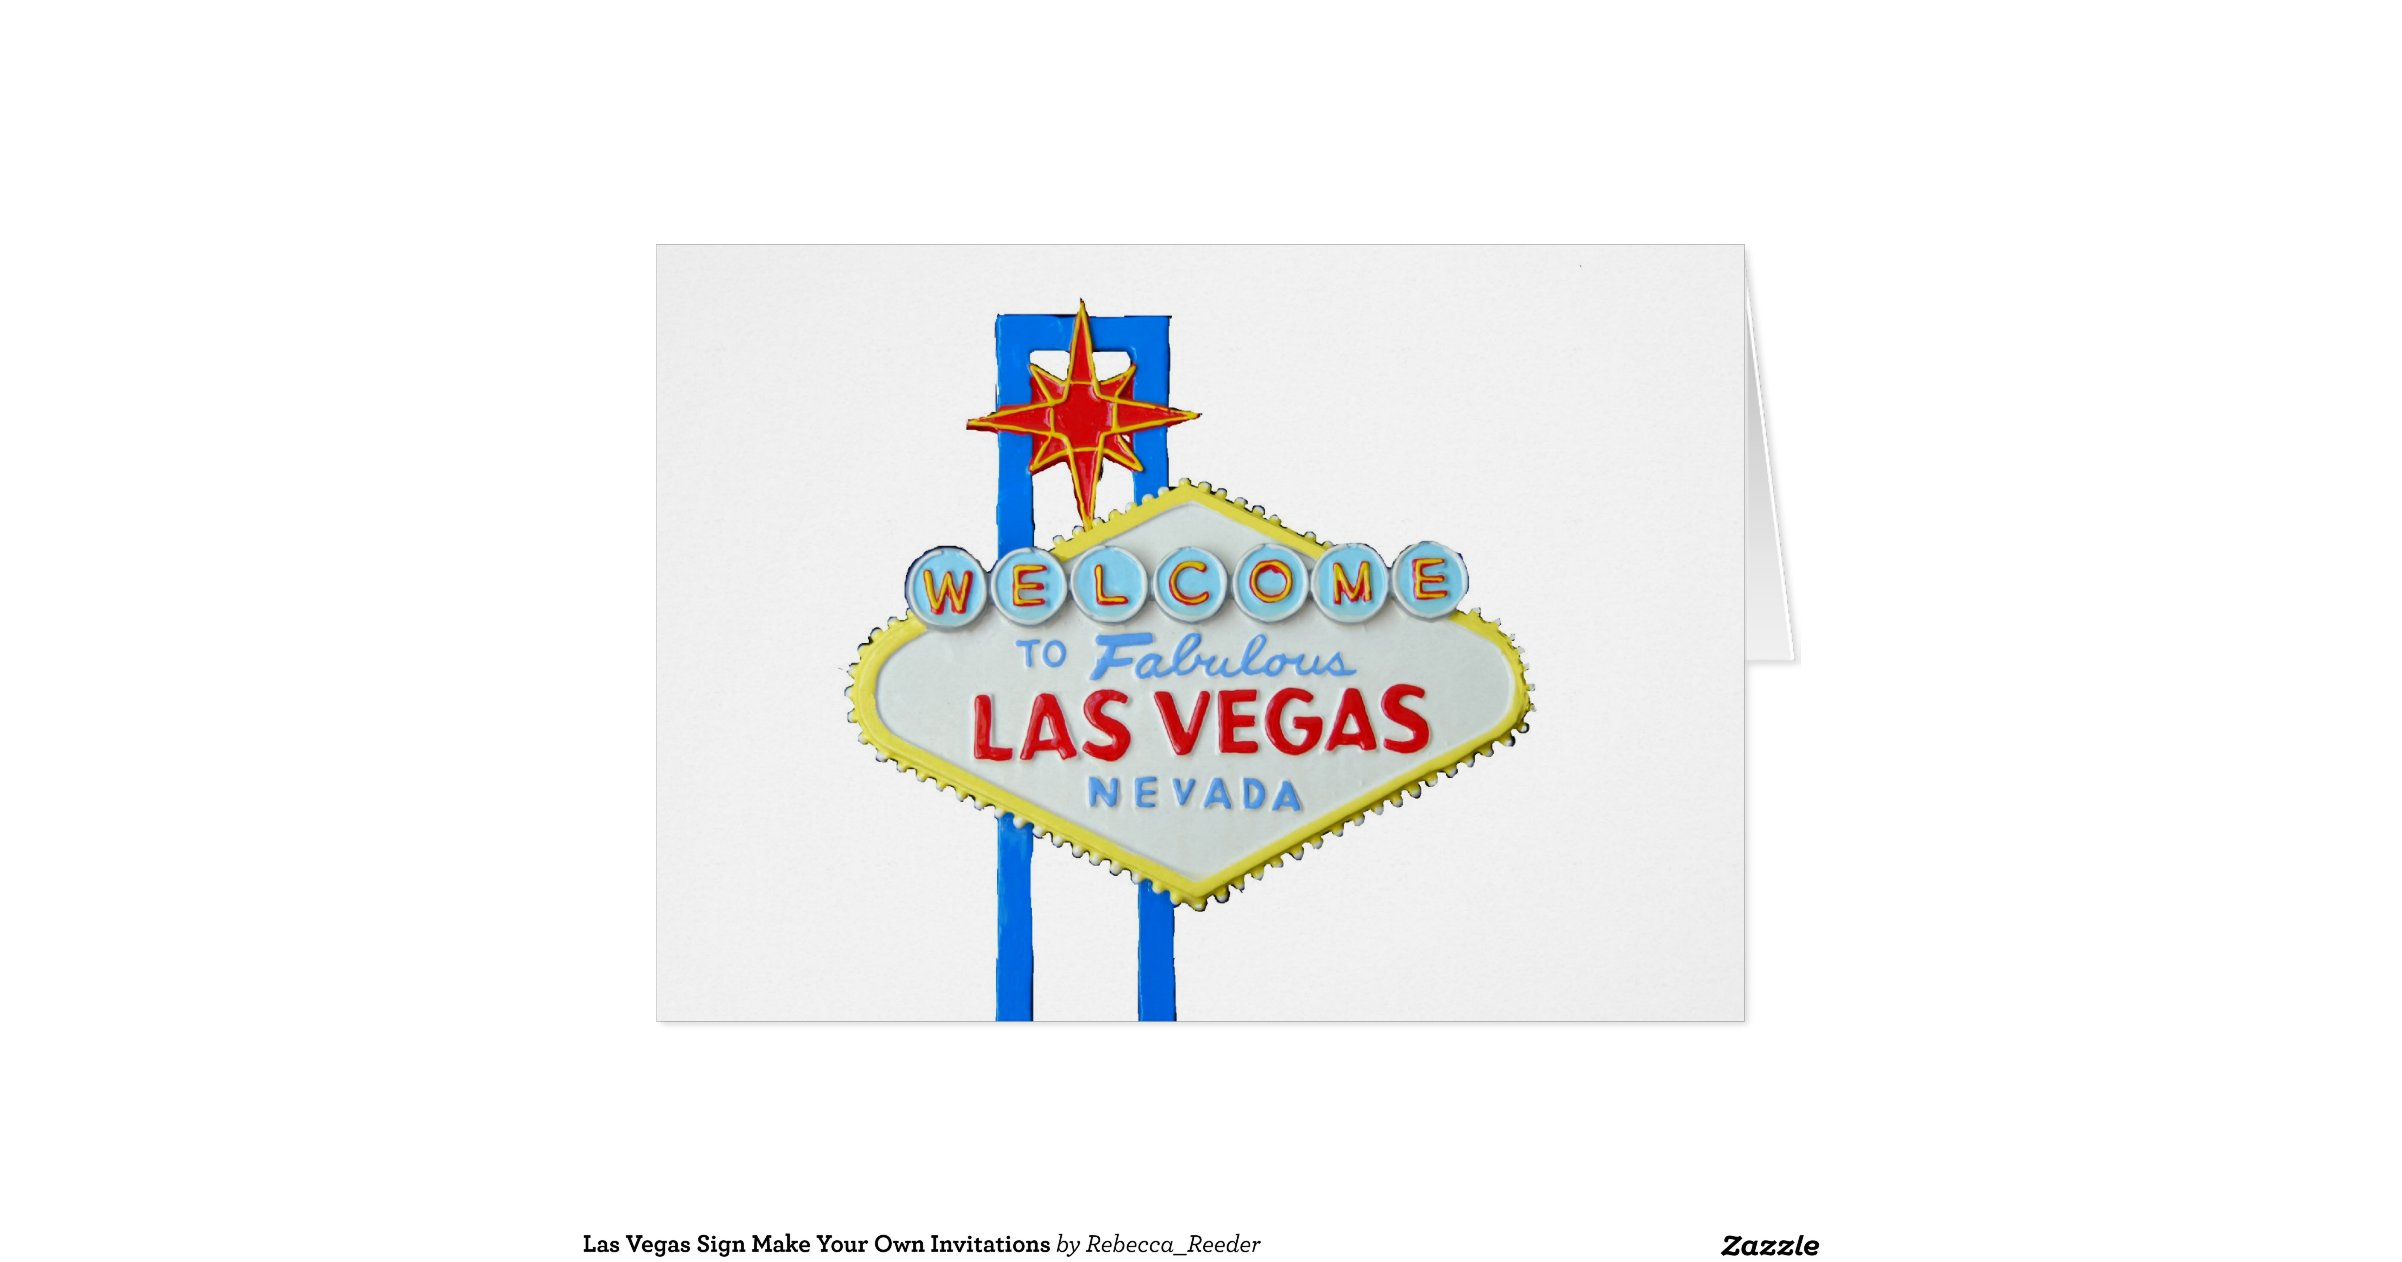 Las Vegas Sign Make Your Own Invitations Note Card